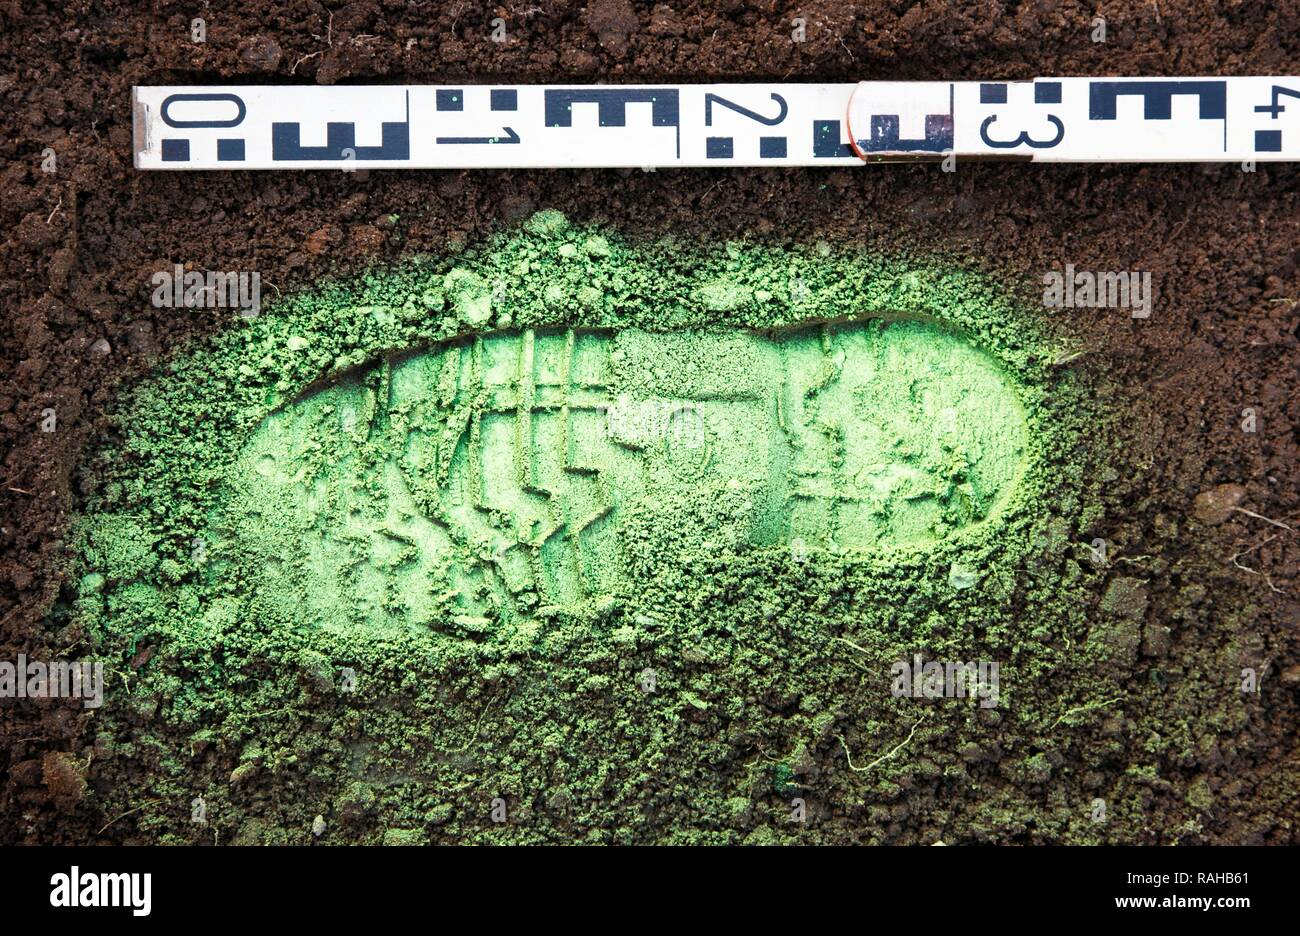 Criminal investigation department, police, shoe print at a crime scene, print made visible with green spray paint and taking of - Stock Image